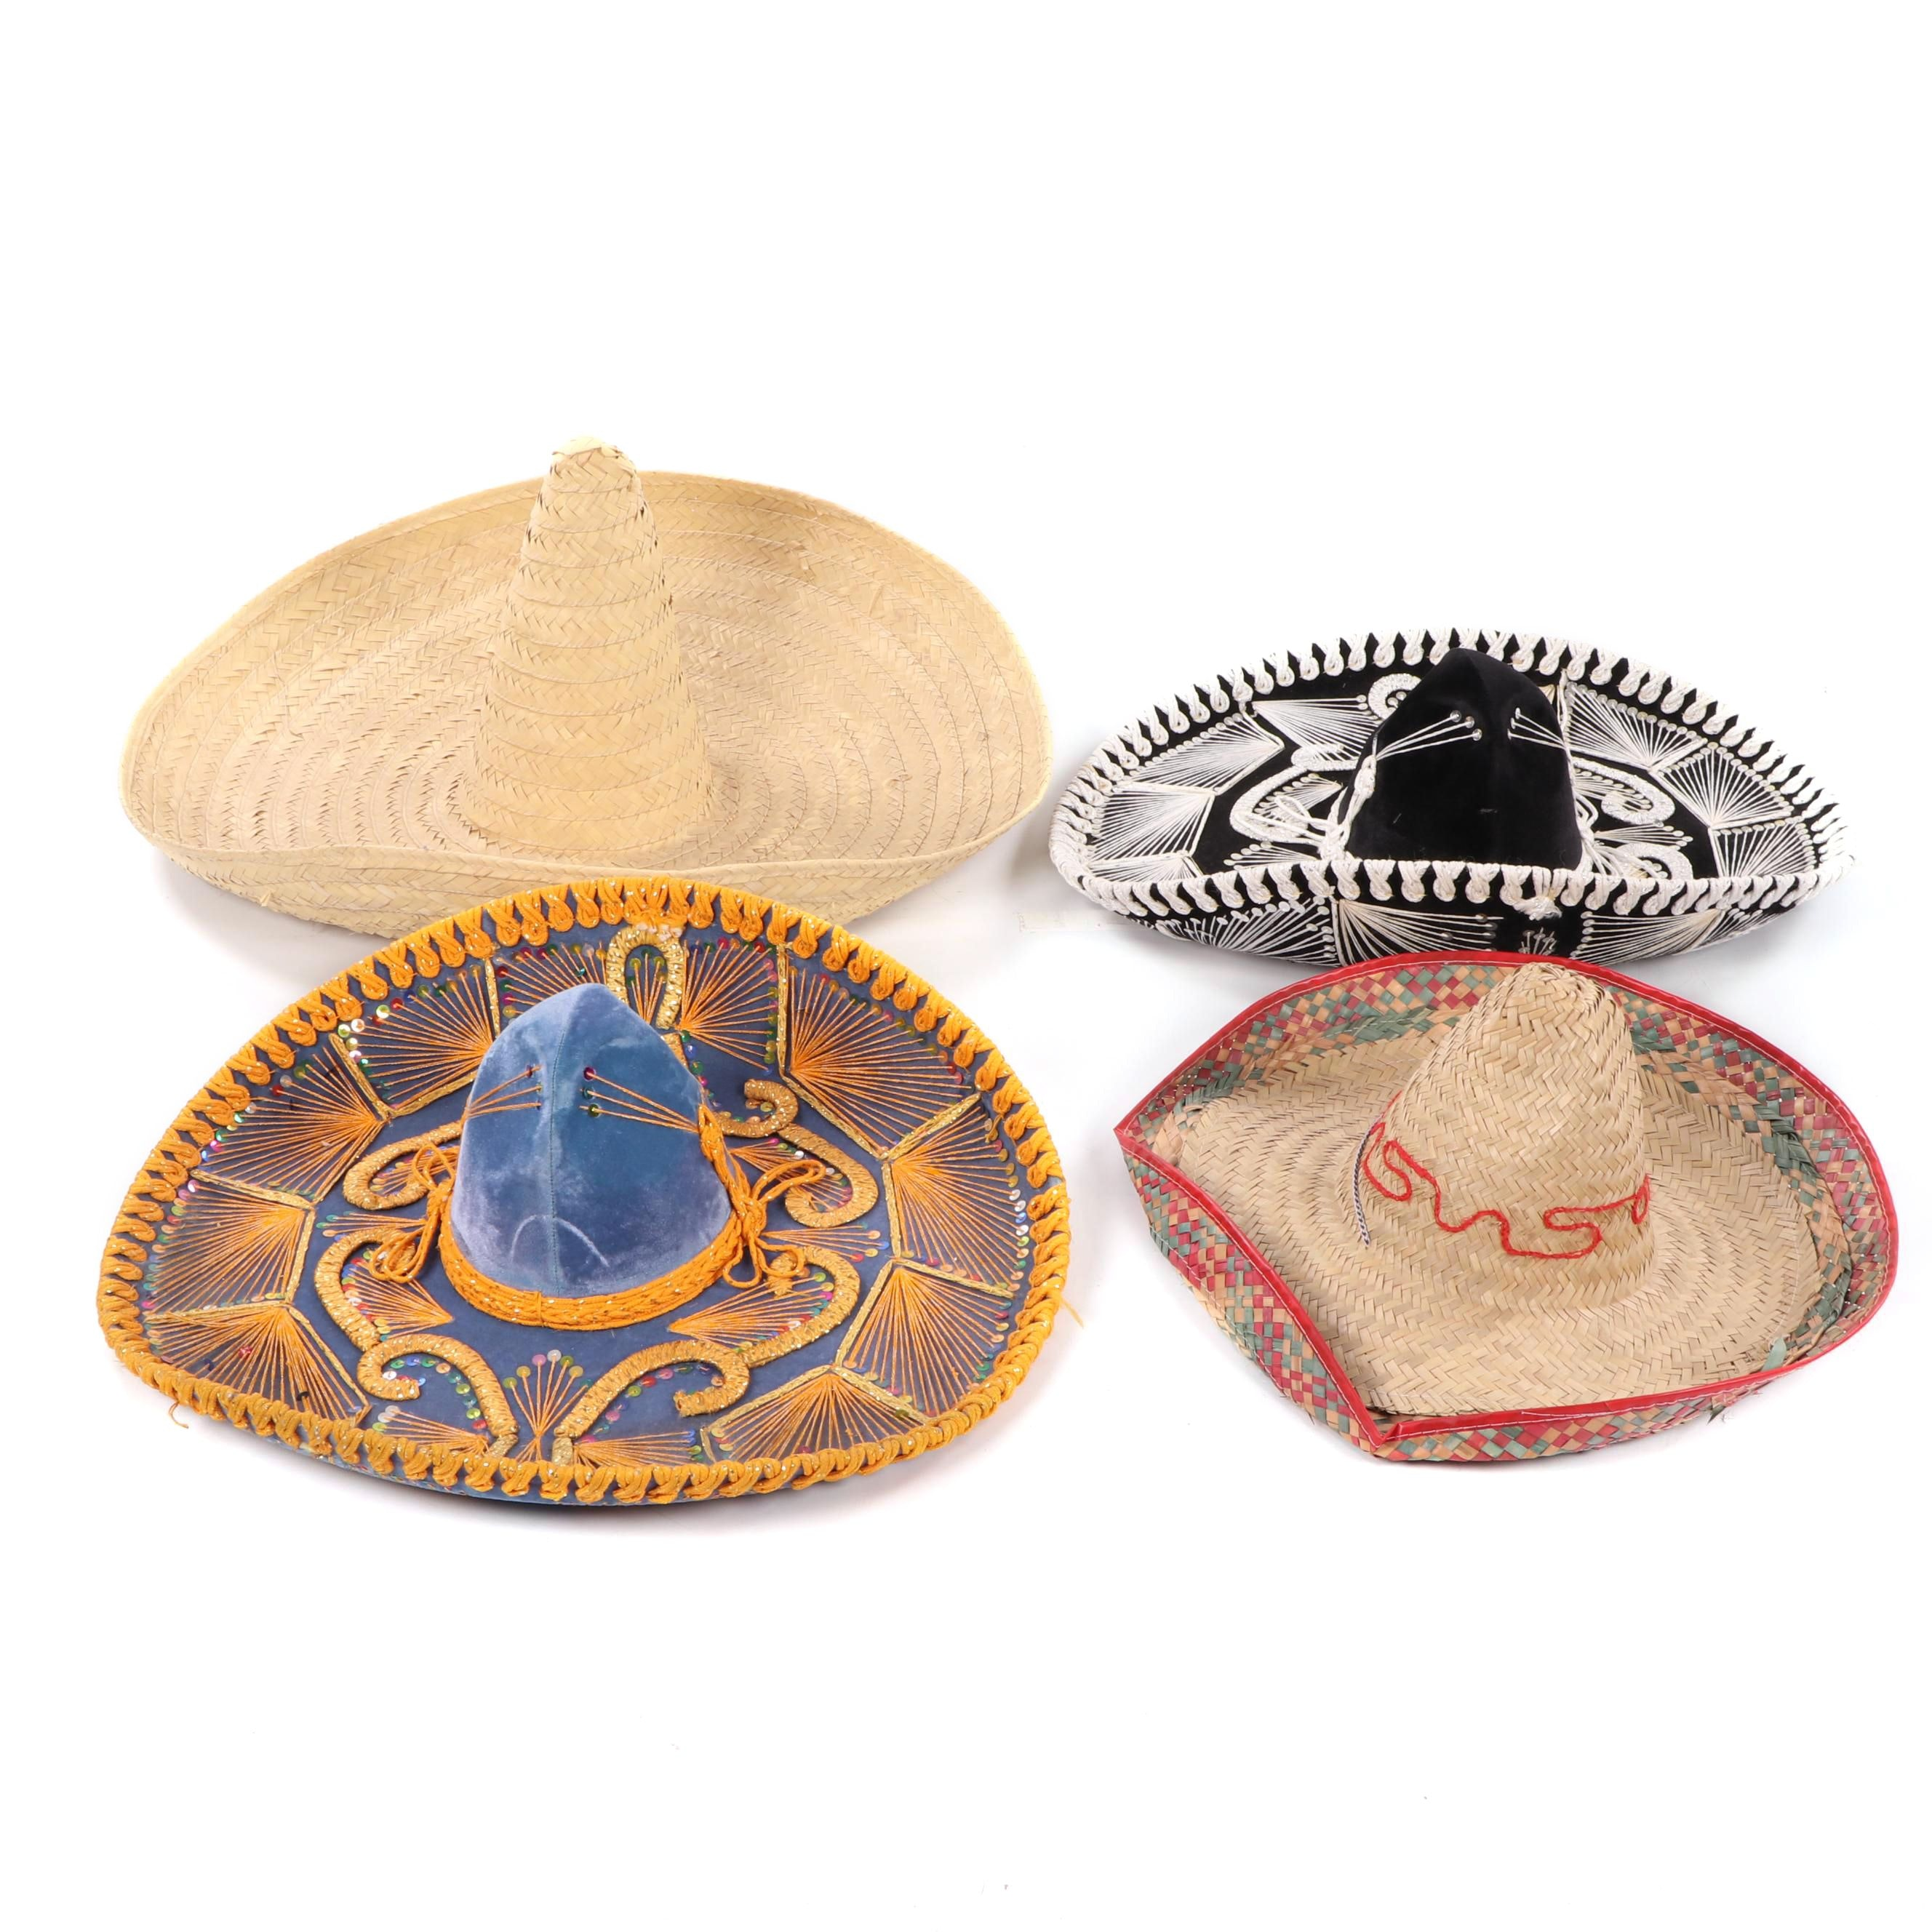 Woven and Embellished Sombreros, Made in Mexico